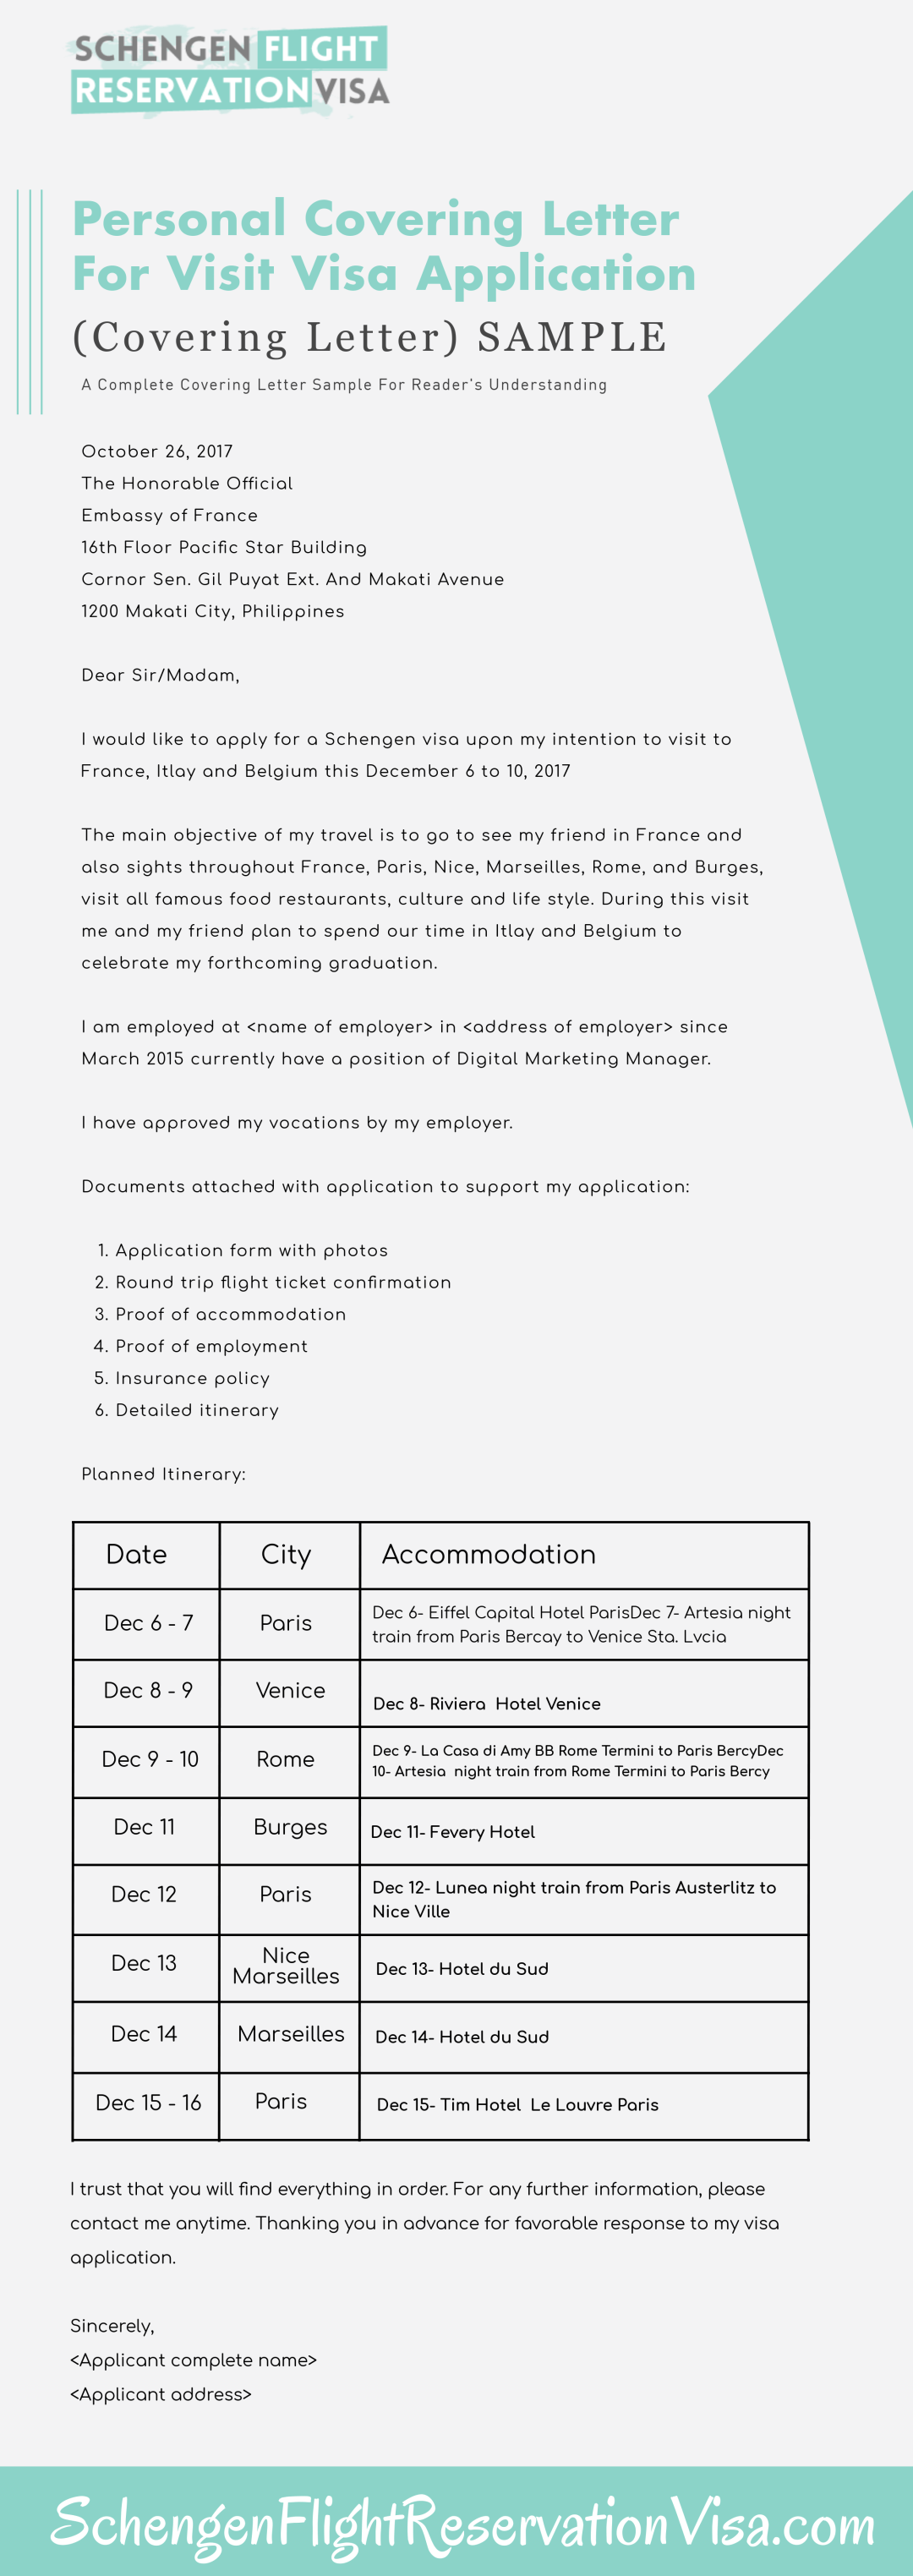 Personal Covering Letter Guide And Samples For Visa Application Process